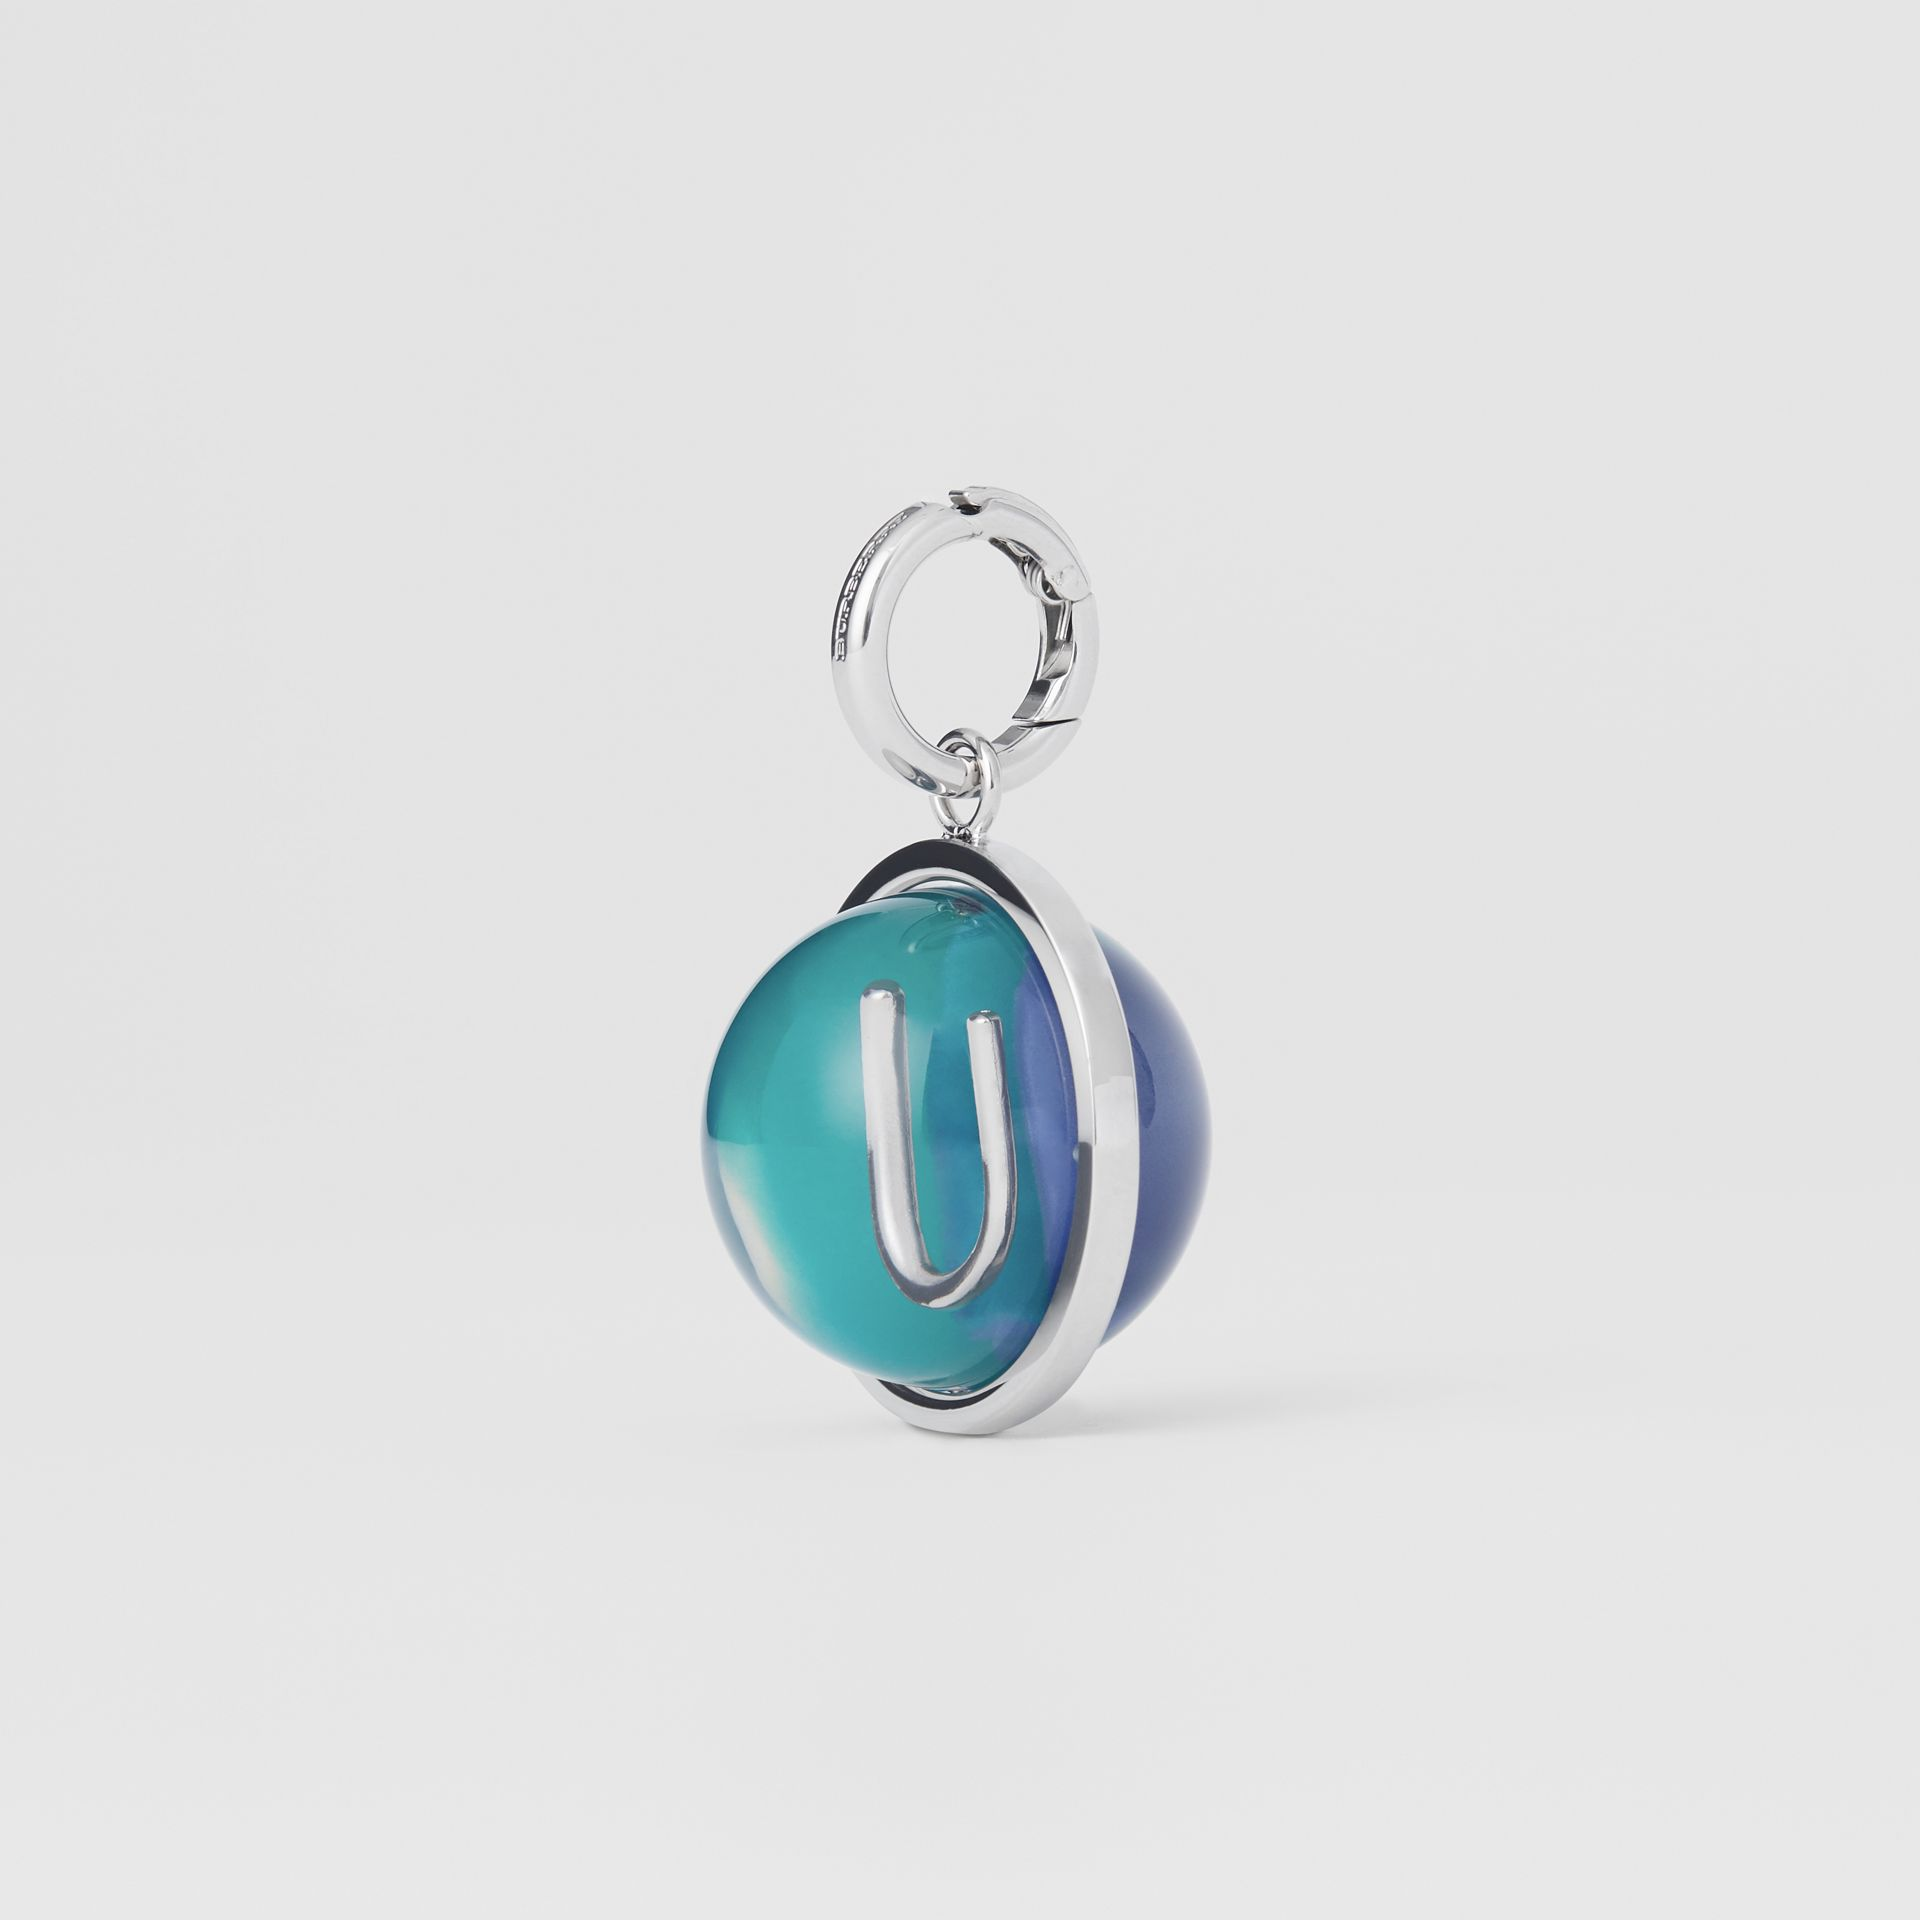 Marbled Resin 'U' Alphabet Charm in Palladio/ocean Blue - Women | Burberry - gallery image 4